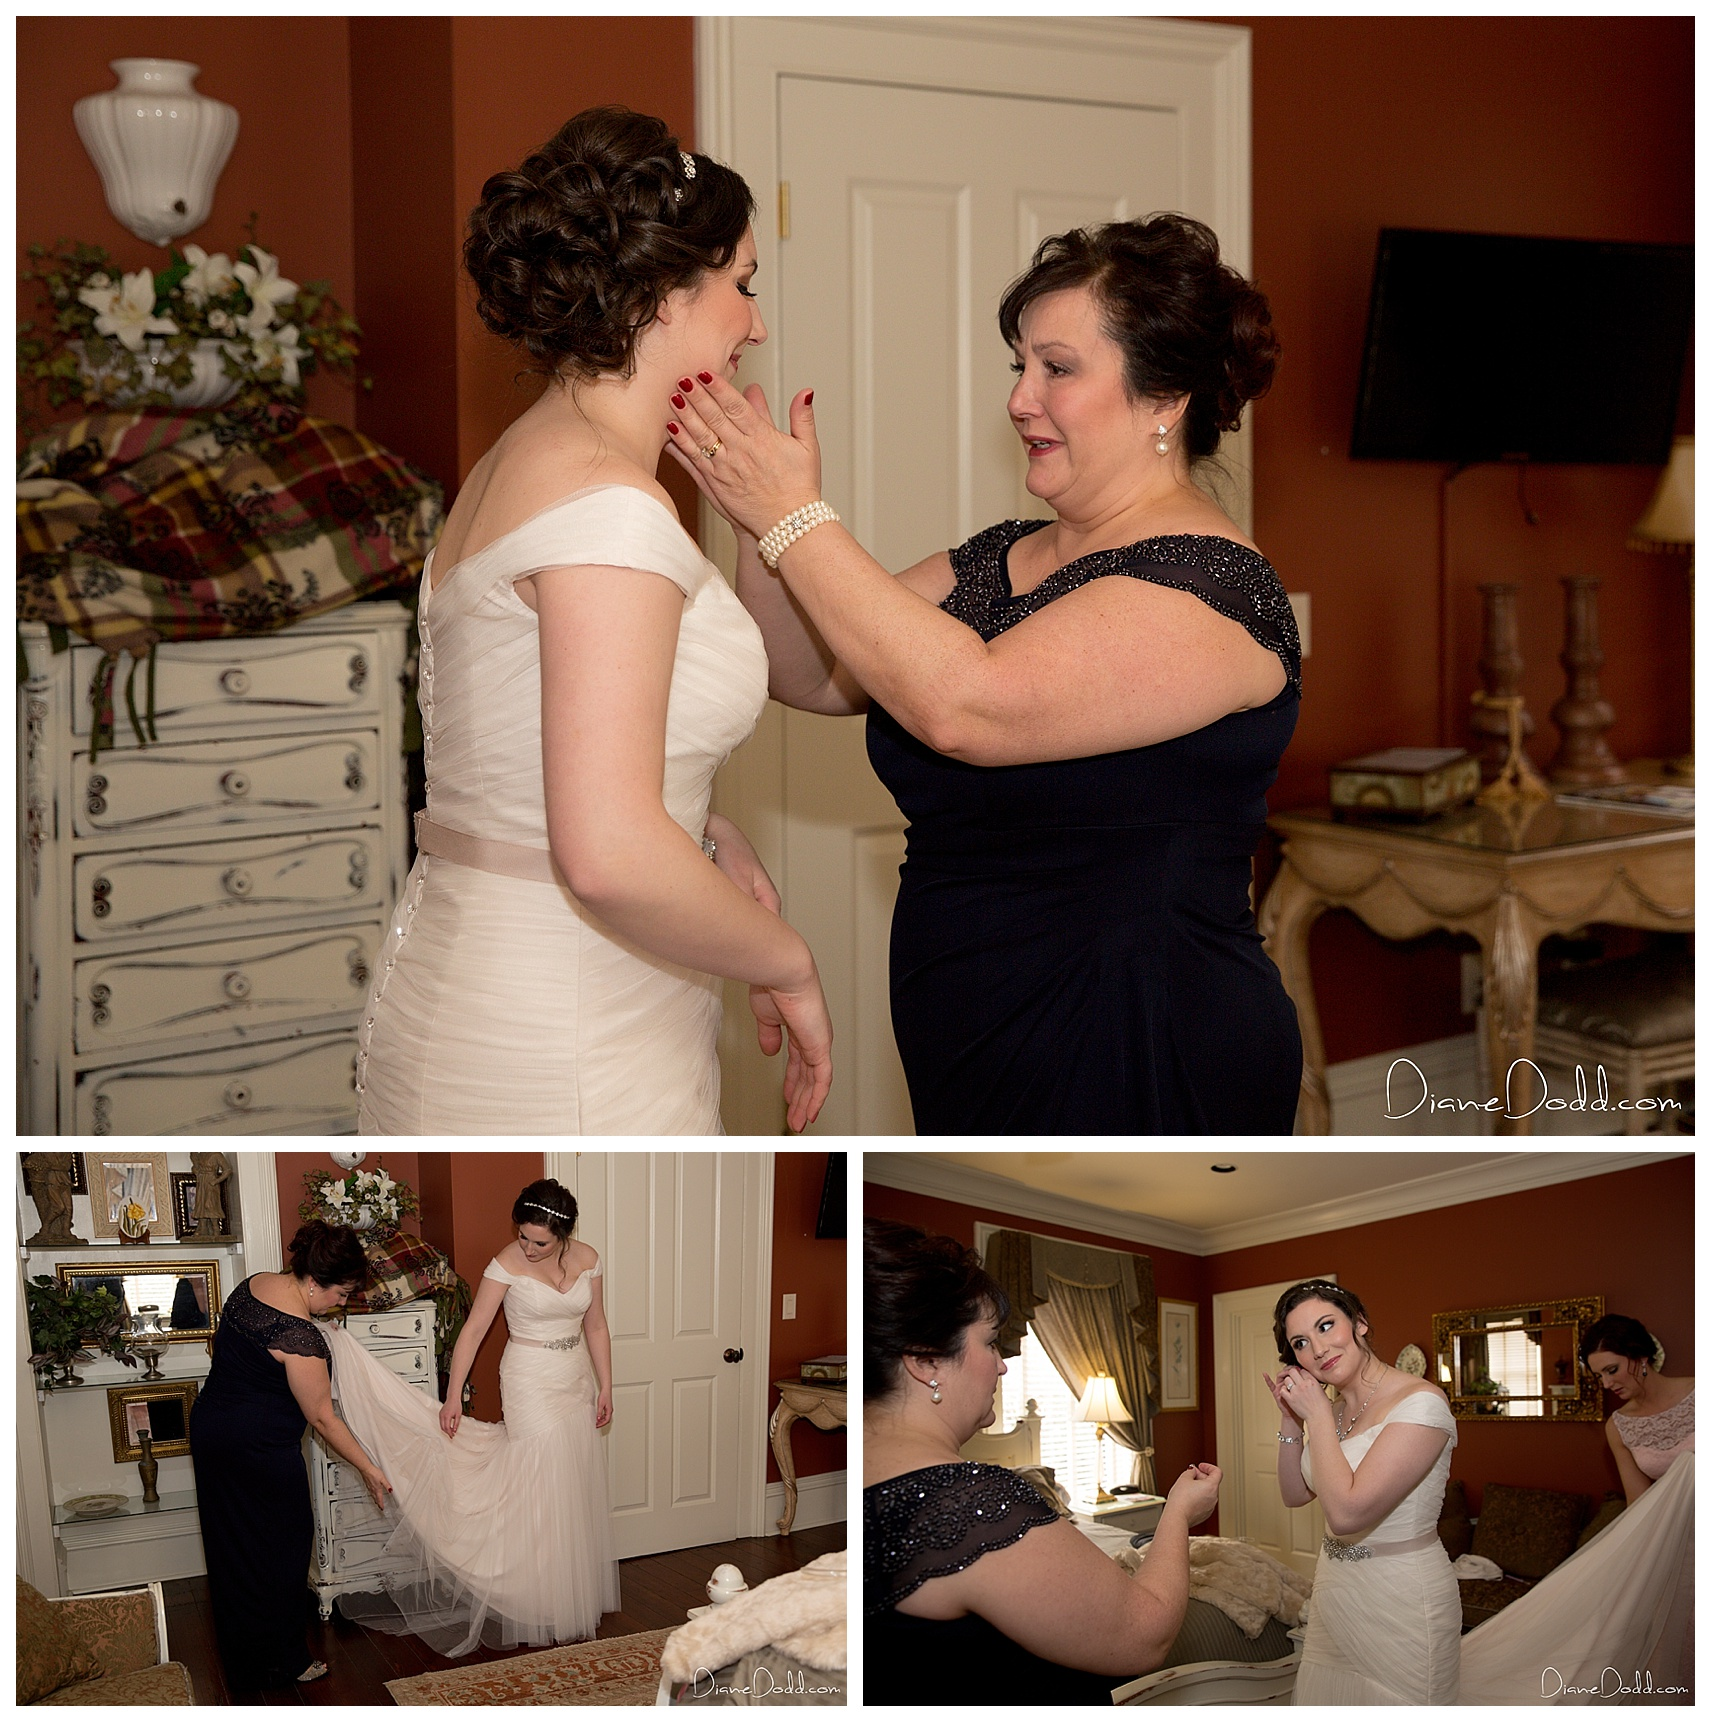 vics-savannah-wedding-7.jpg